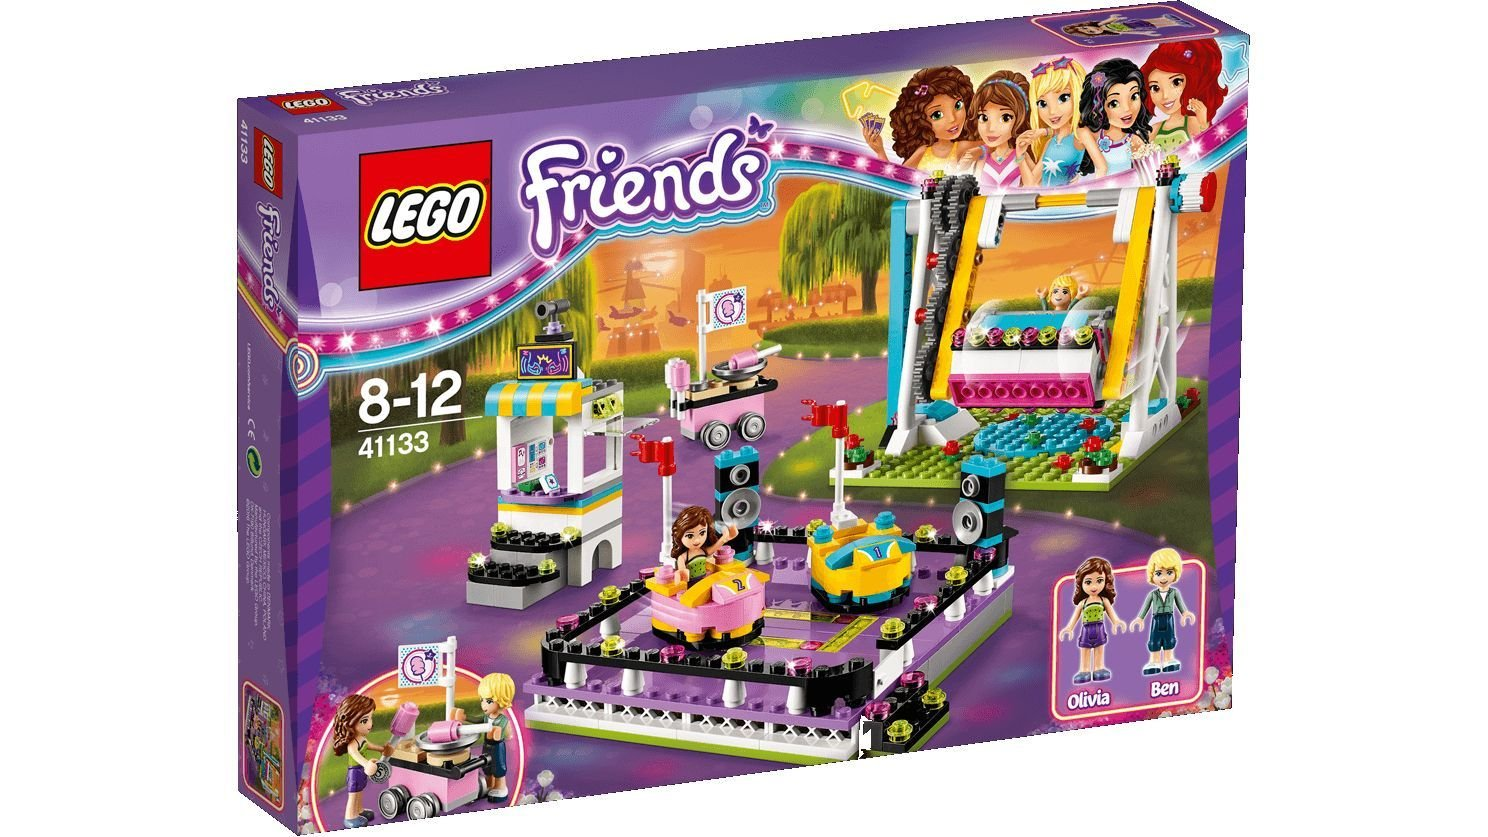 Lego Friends 41133 - L'autoscontro del parco divertimenti per 37,97€  - inclusa spedizione [amazon.co.uk]